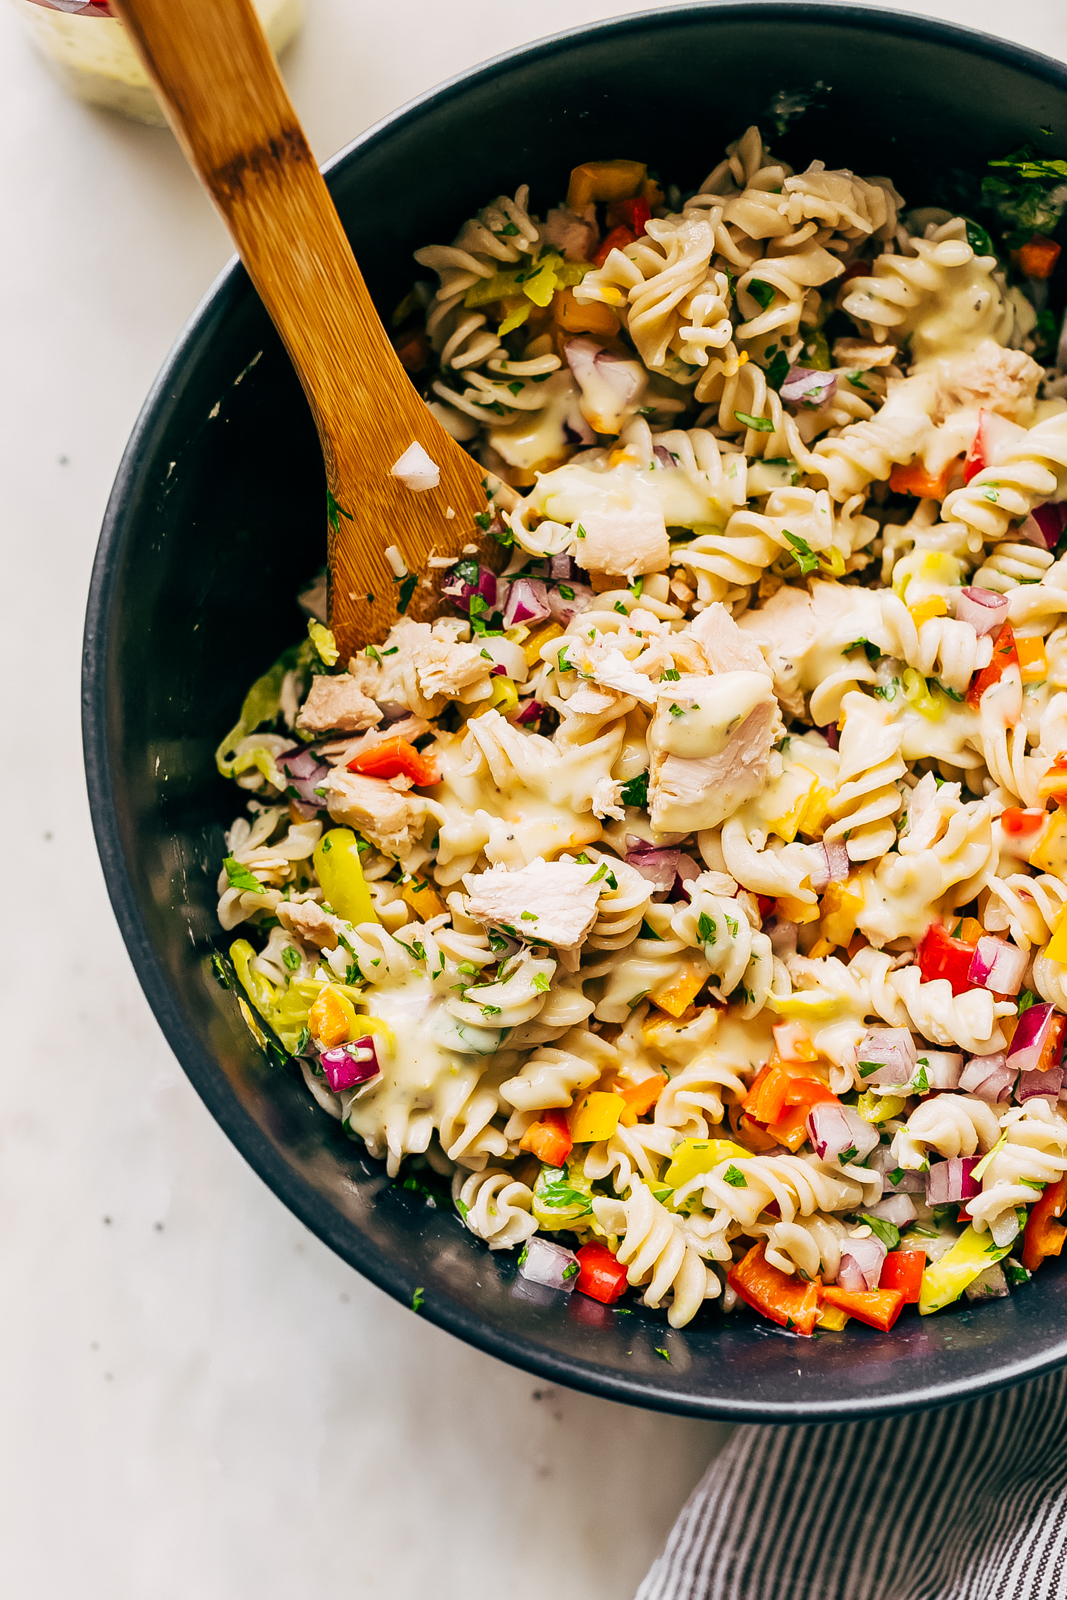 tuna pasta salad in black bowl with wooden spoon